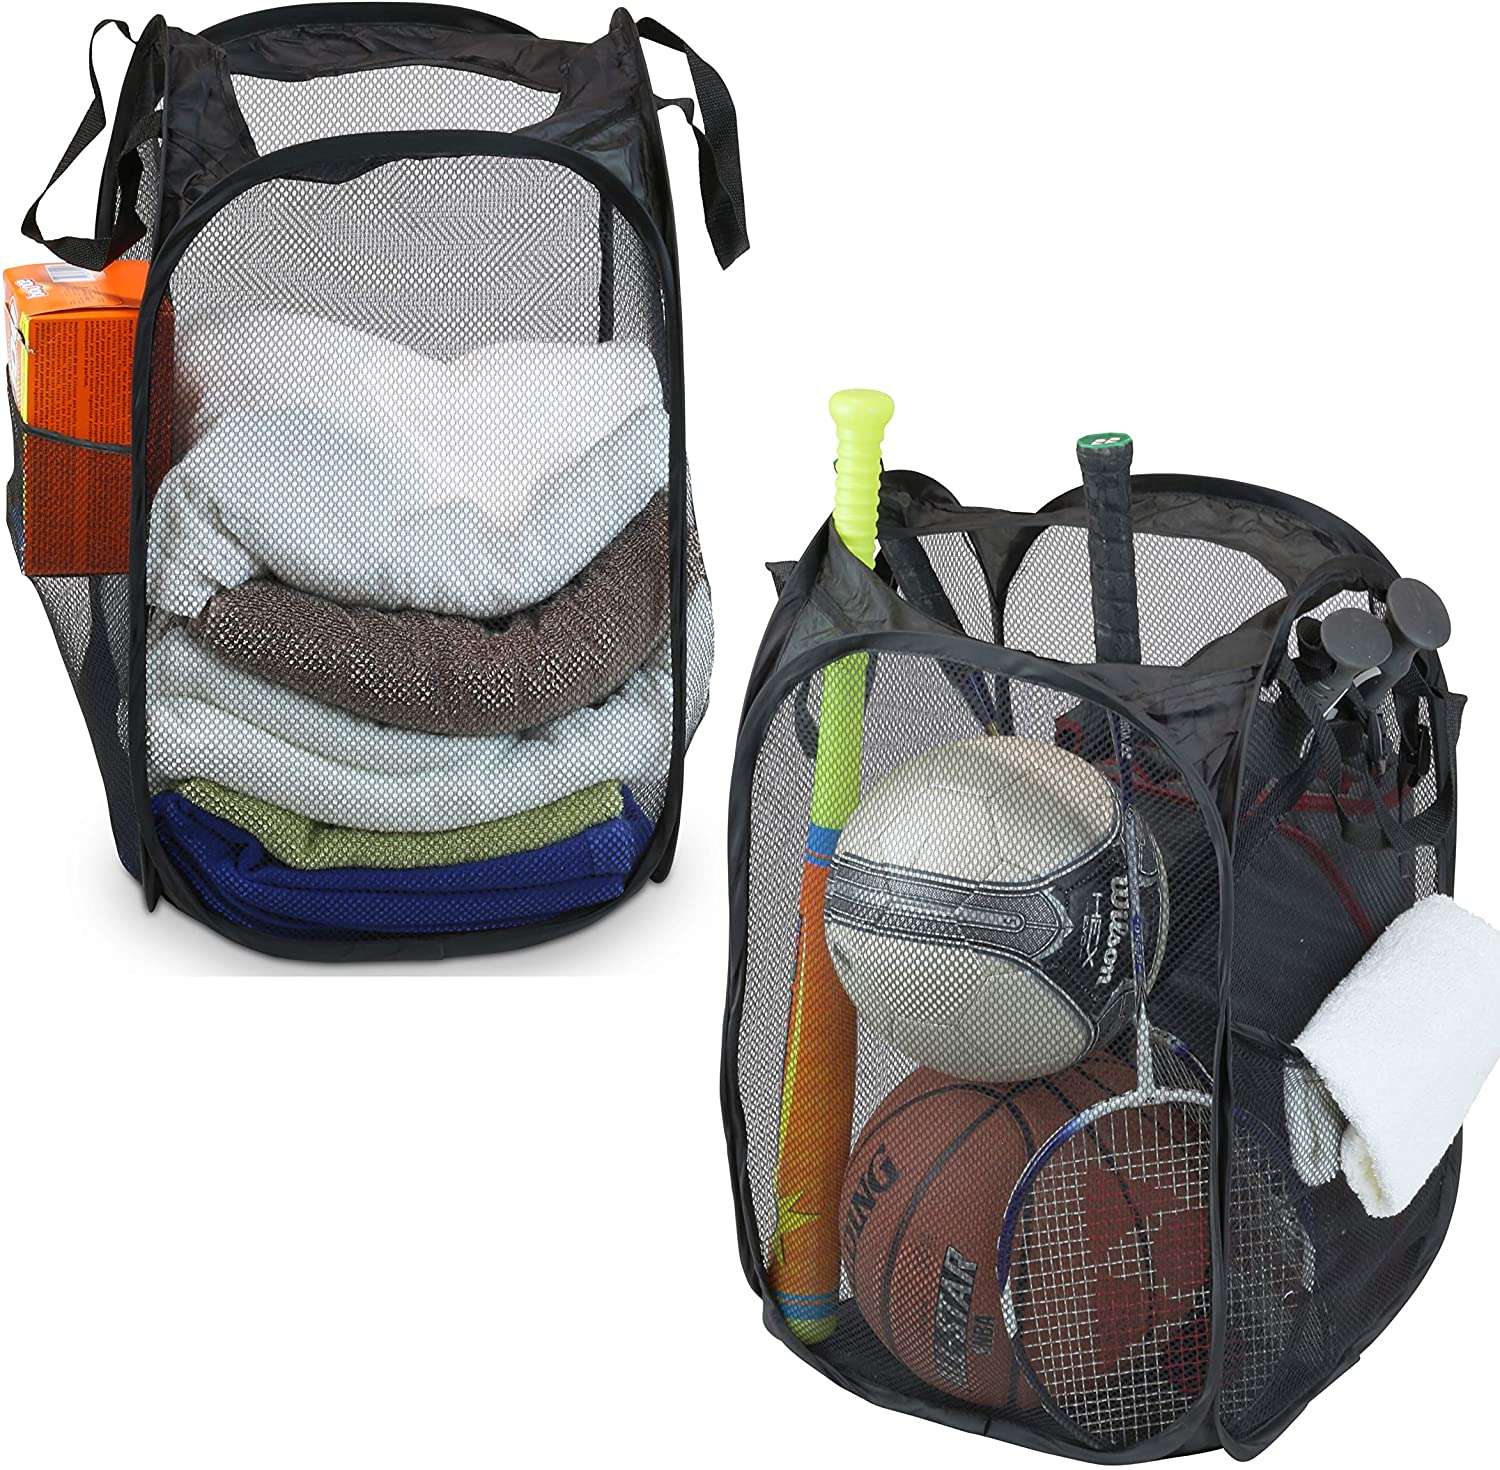 Today's only 2 Pack - SimpleHouseware Mesh Laundry Hamper Pop-Up Award-winning store with Basket